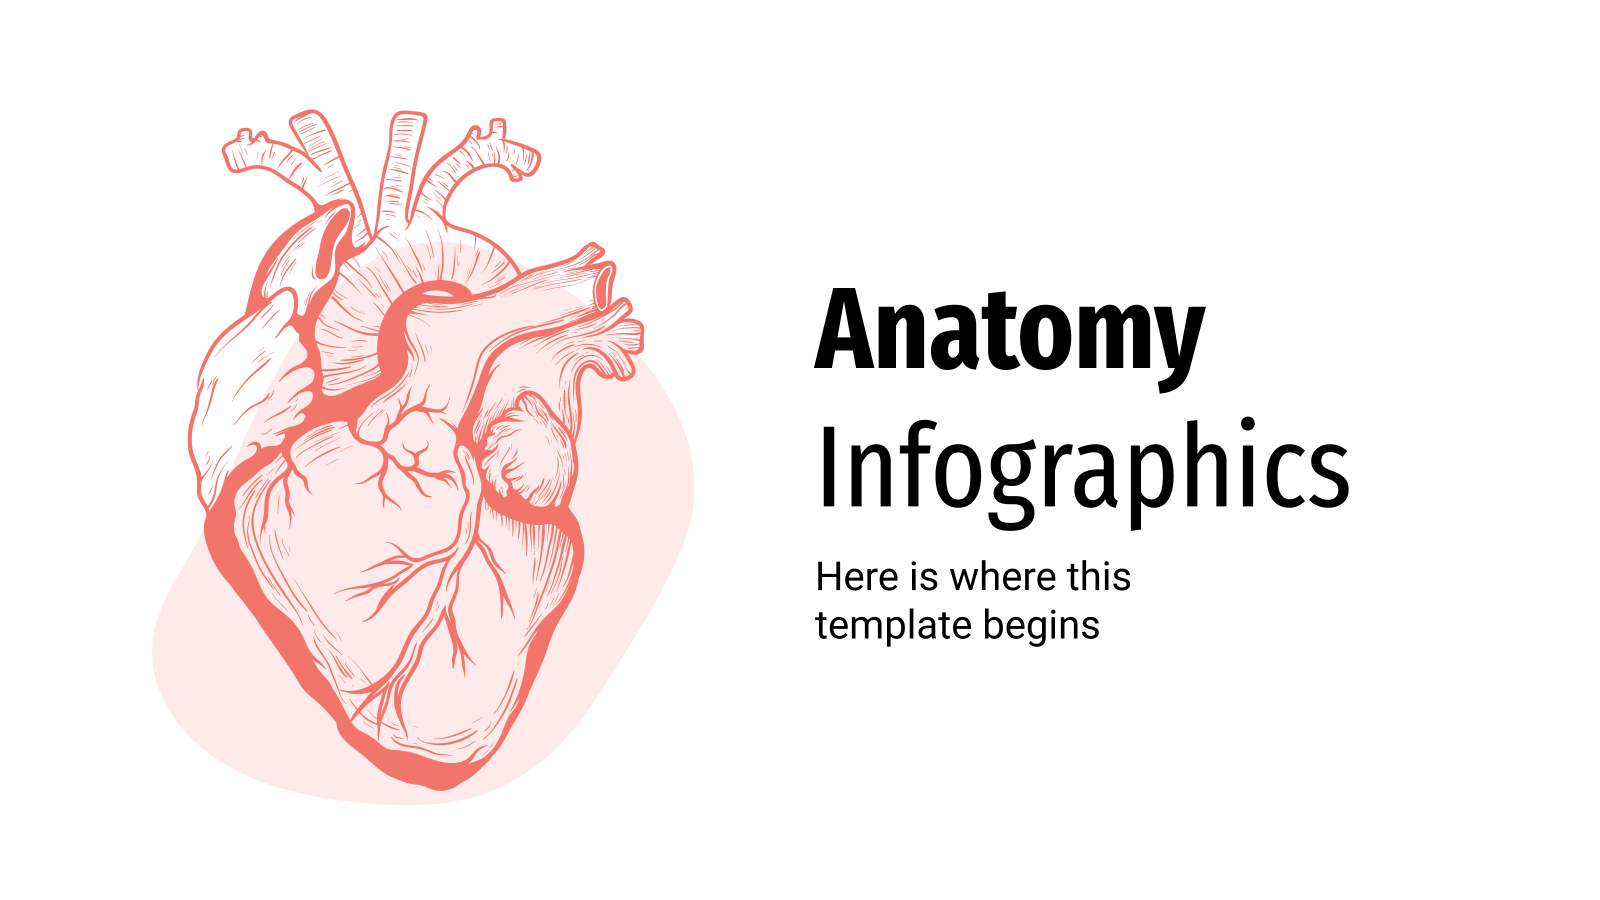 Anatomy Infographics presentation template